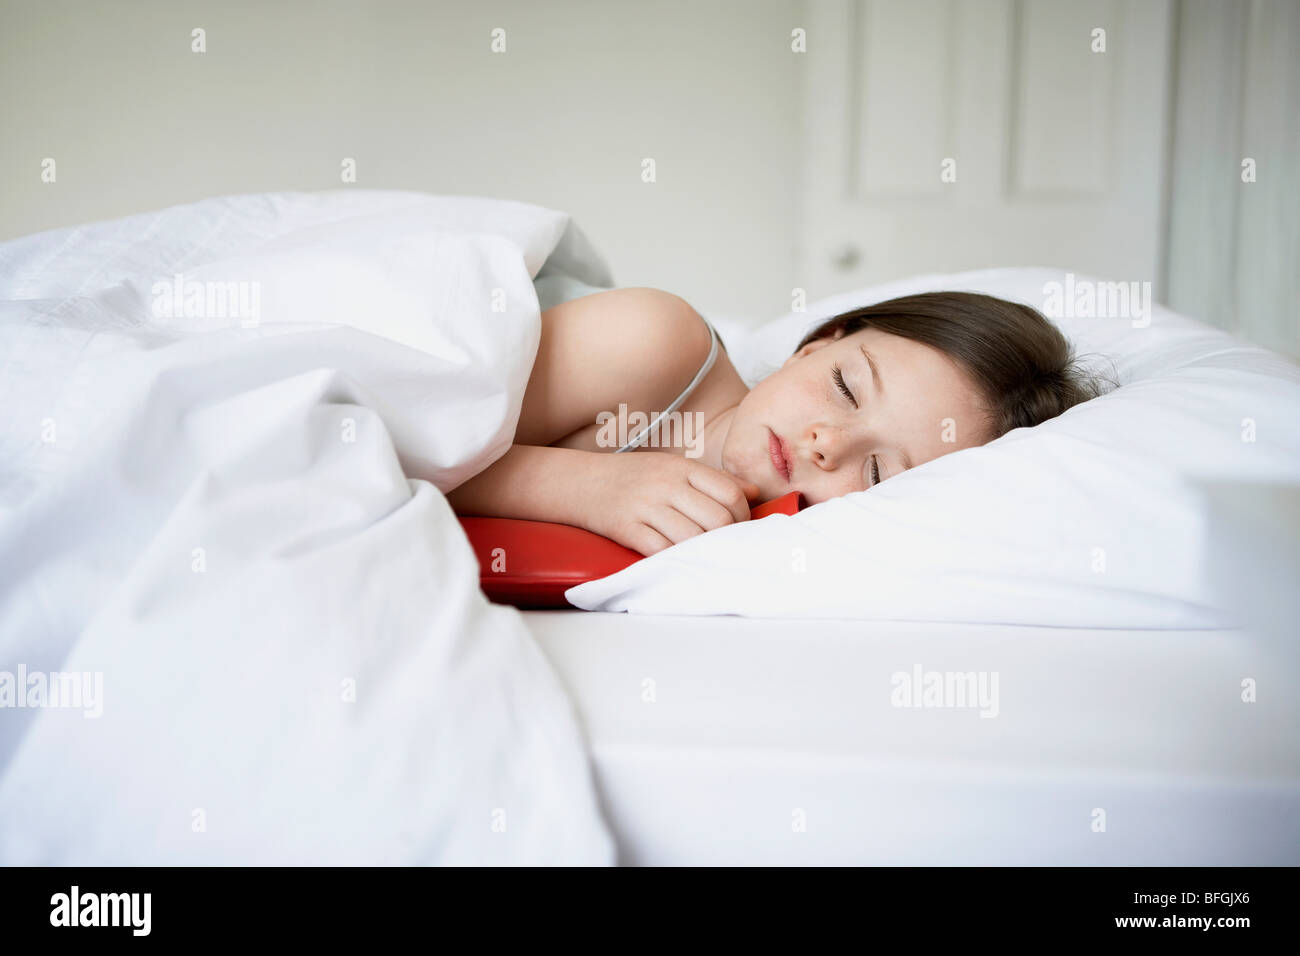 Little girl with cold in bed holding hot water bottle - Stock Image